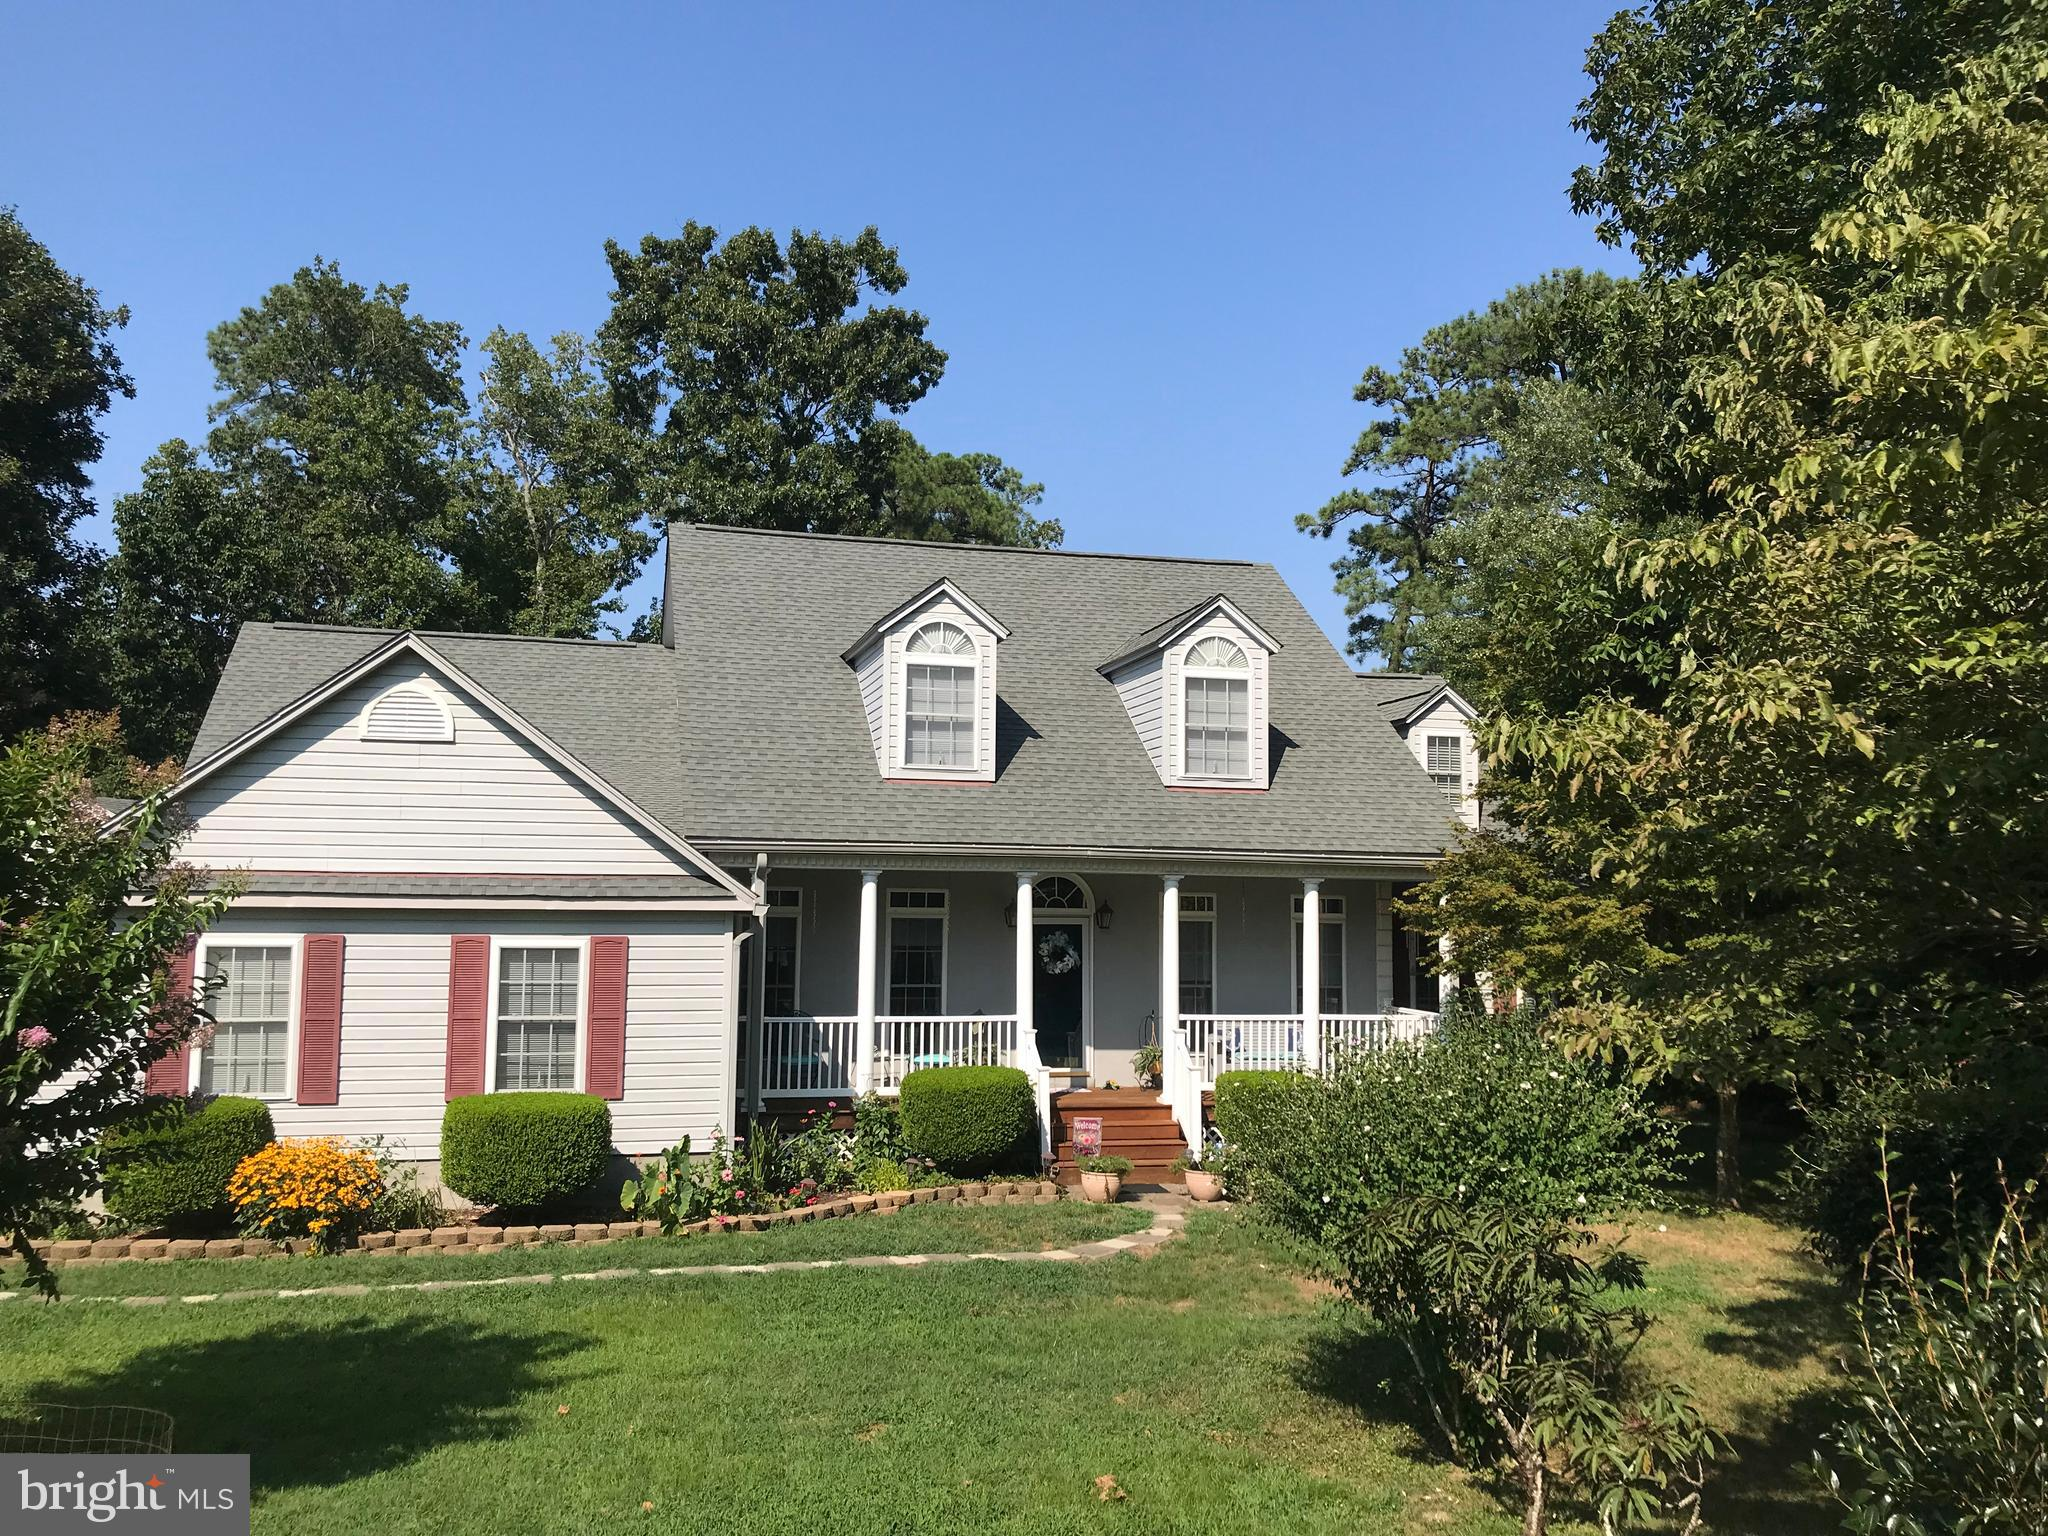 766 TWIN HARBOR ROAD, REEDVILLE, VA 22539